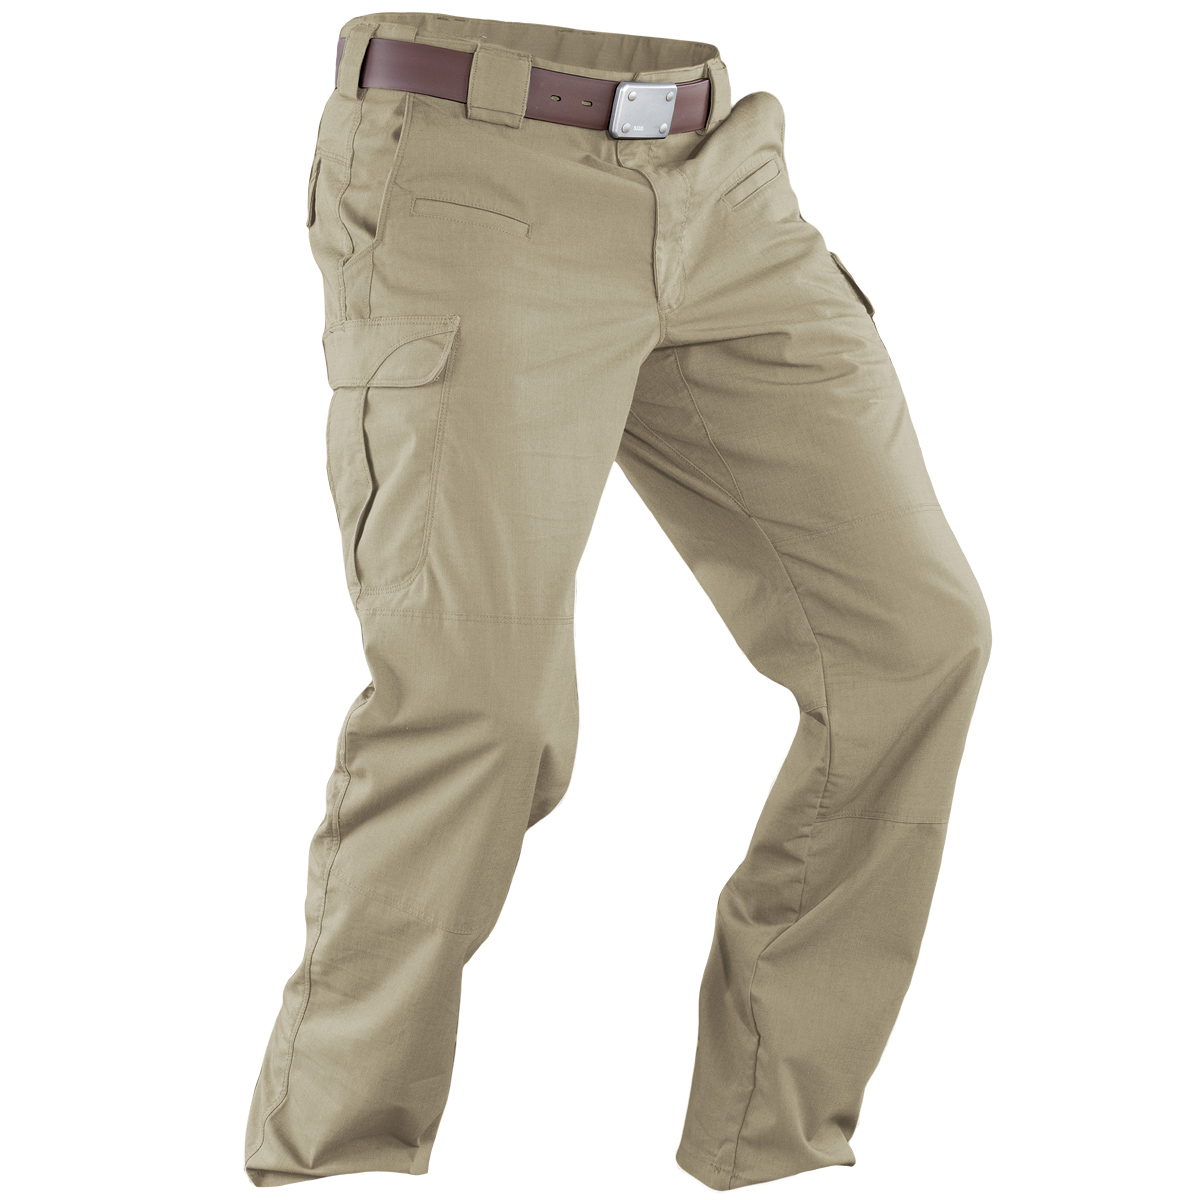 Sep 12,  · In a nutshell, khakis are khaki colored, cotton twill pants. Chinos are a bit dressier than khakis and they come in other colors such as navy, sand, Nantucket red, or baby blue.